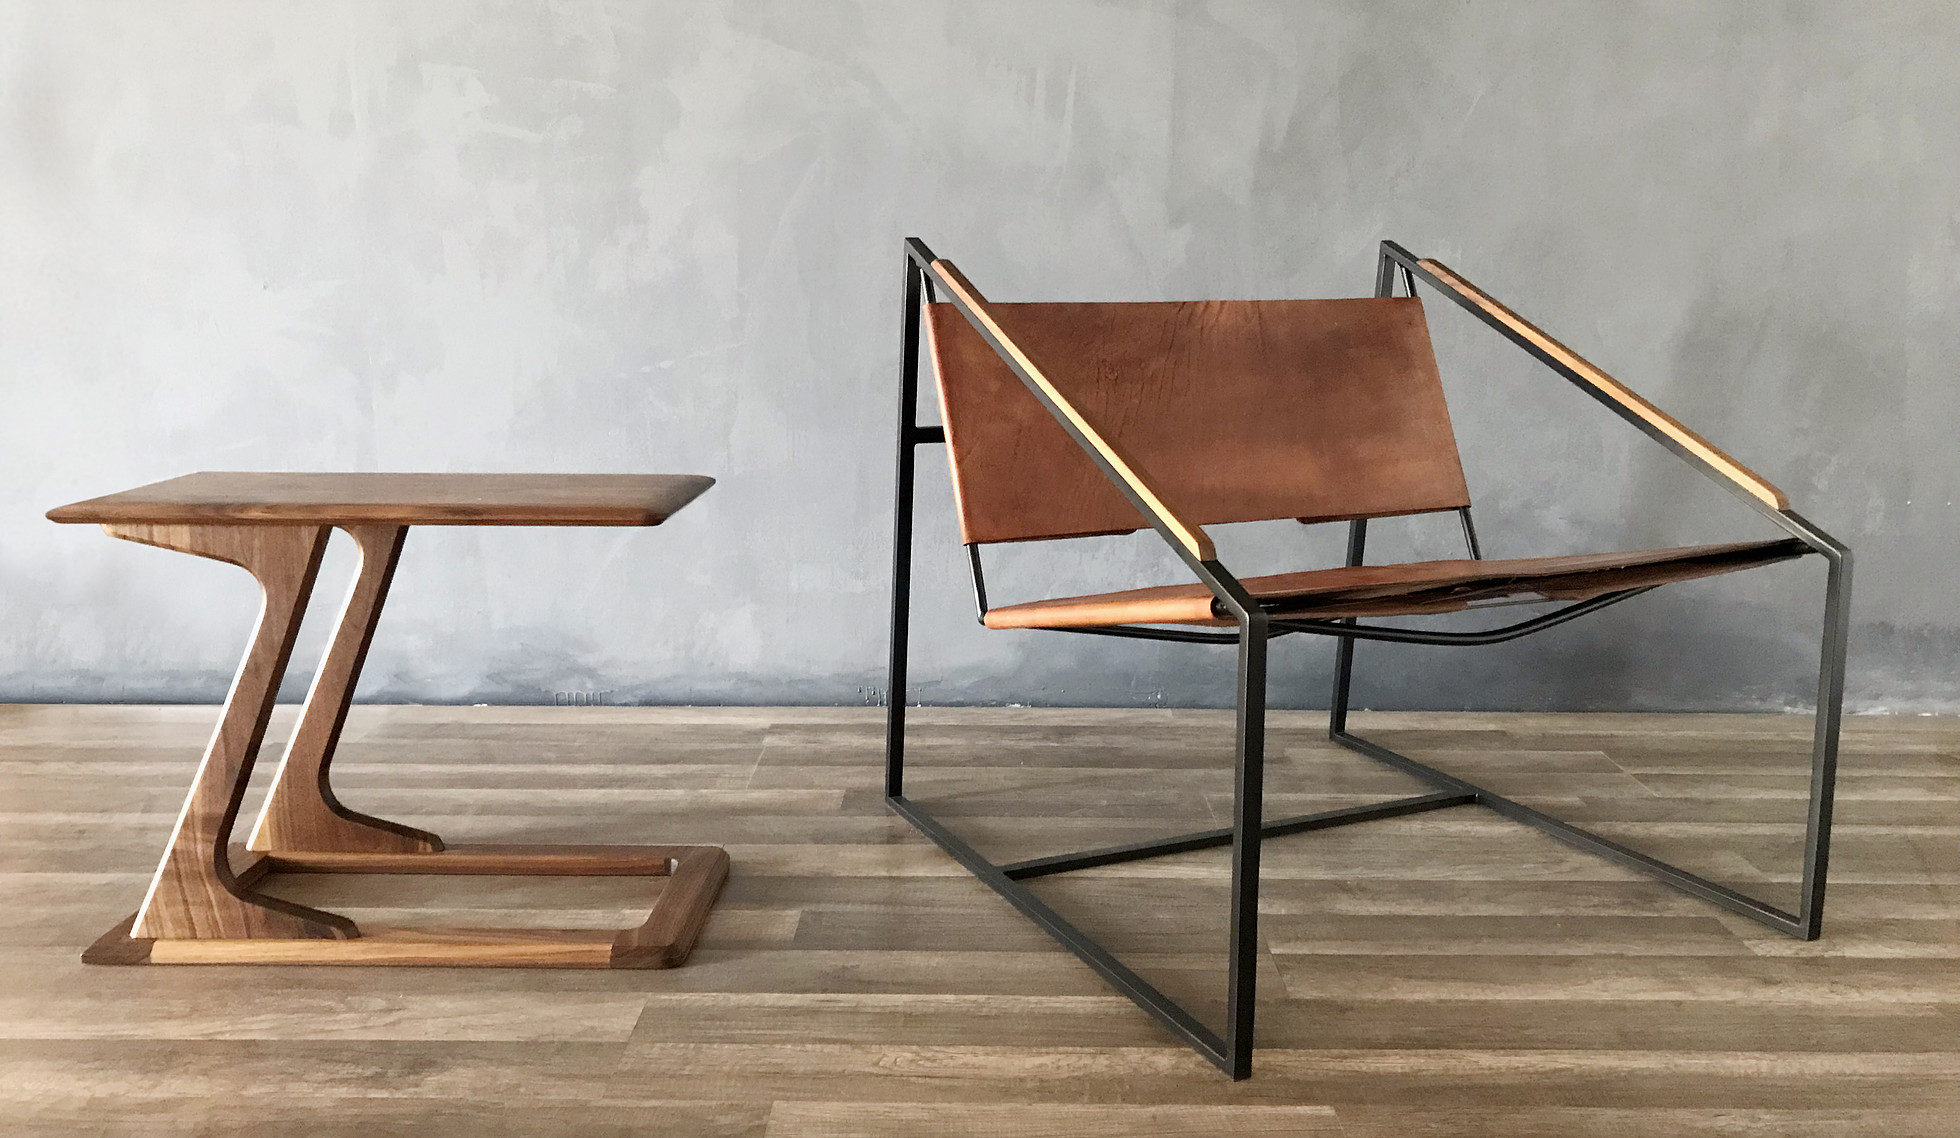 Fluxco Design develops custom furniture and also sources unique vintage pieces. Shown on the right is their LZ Lounge Chair, winner of the 2018 Good Design Award.